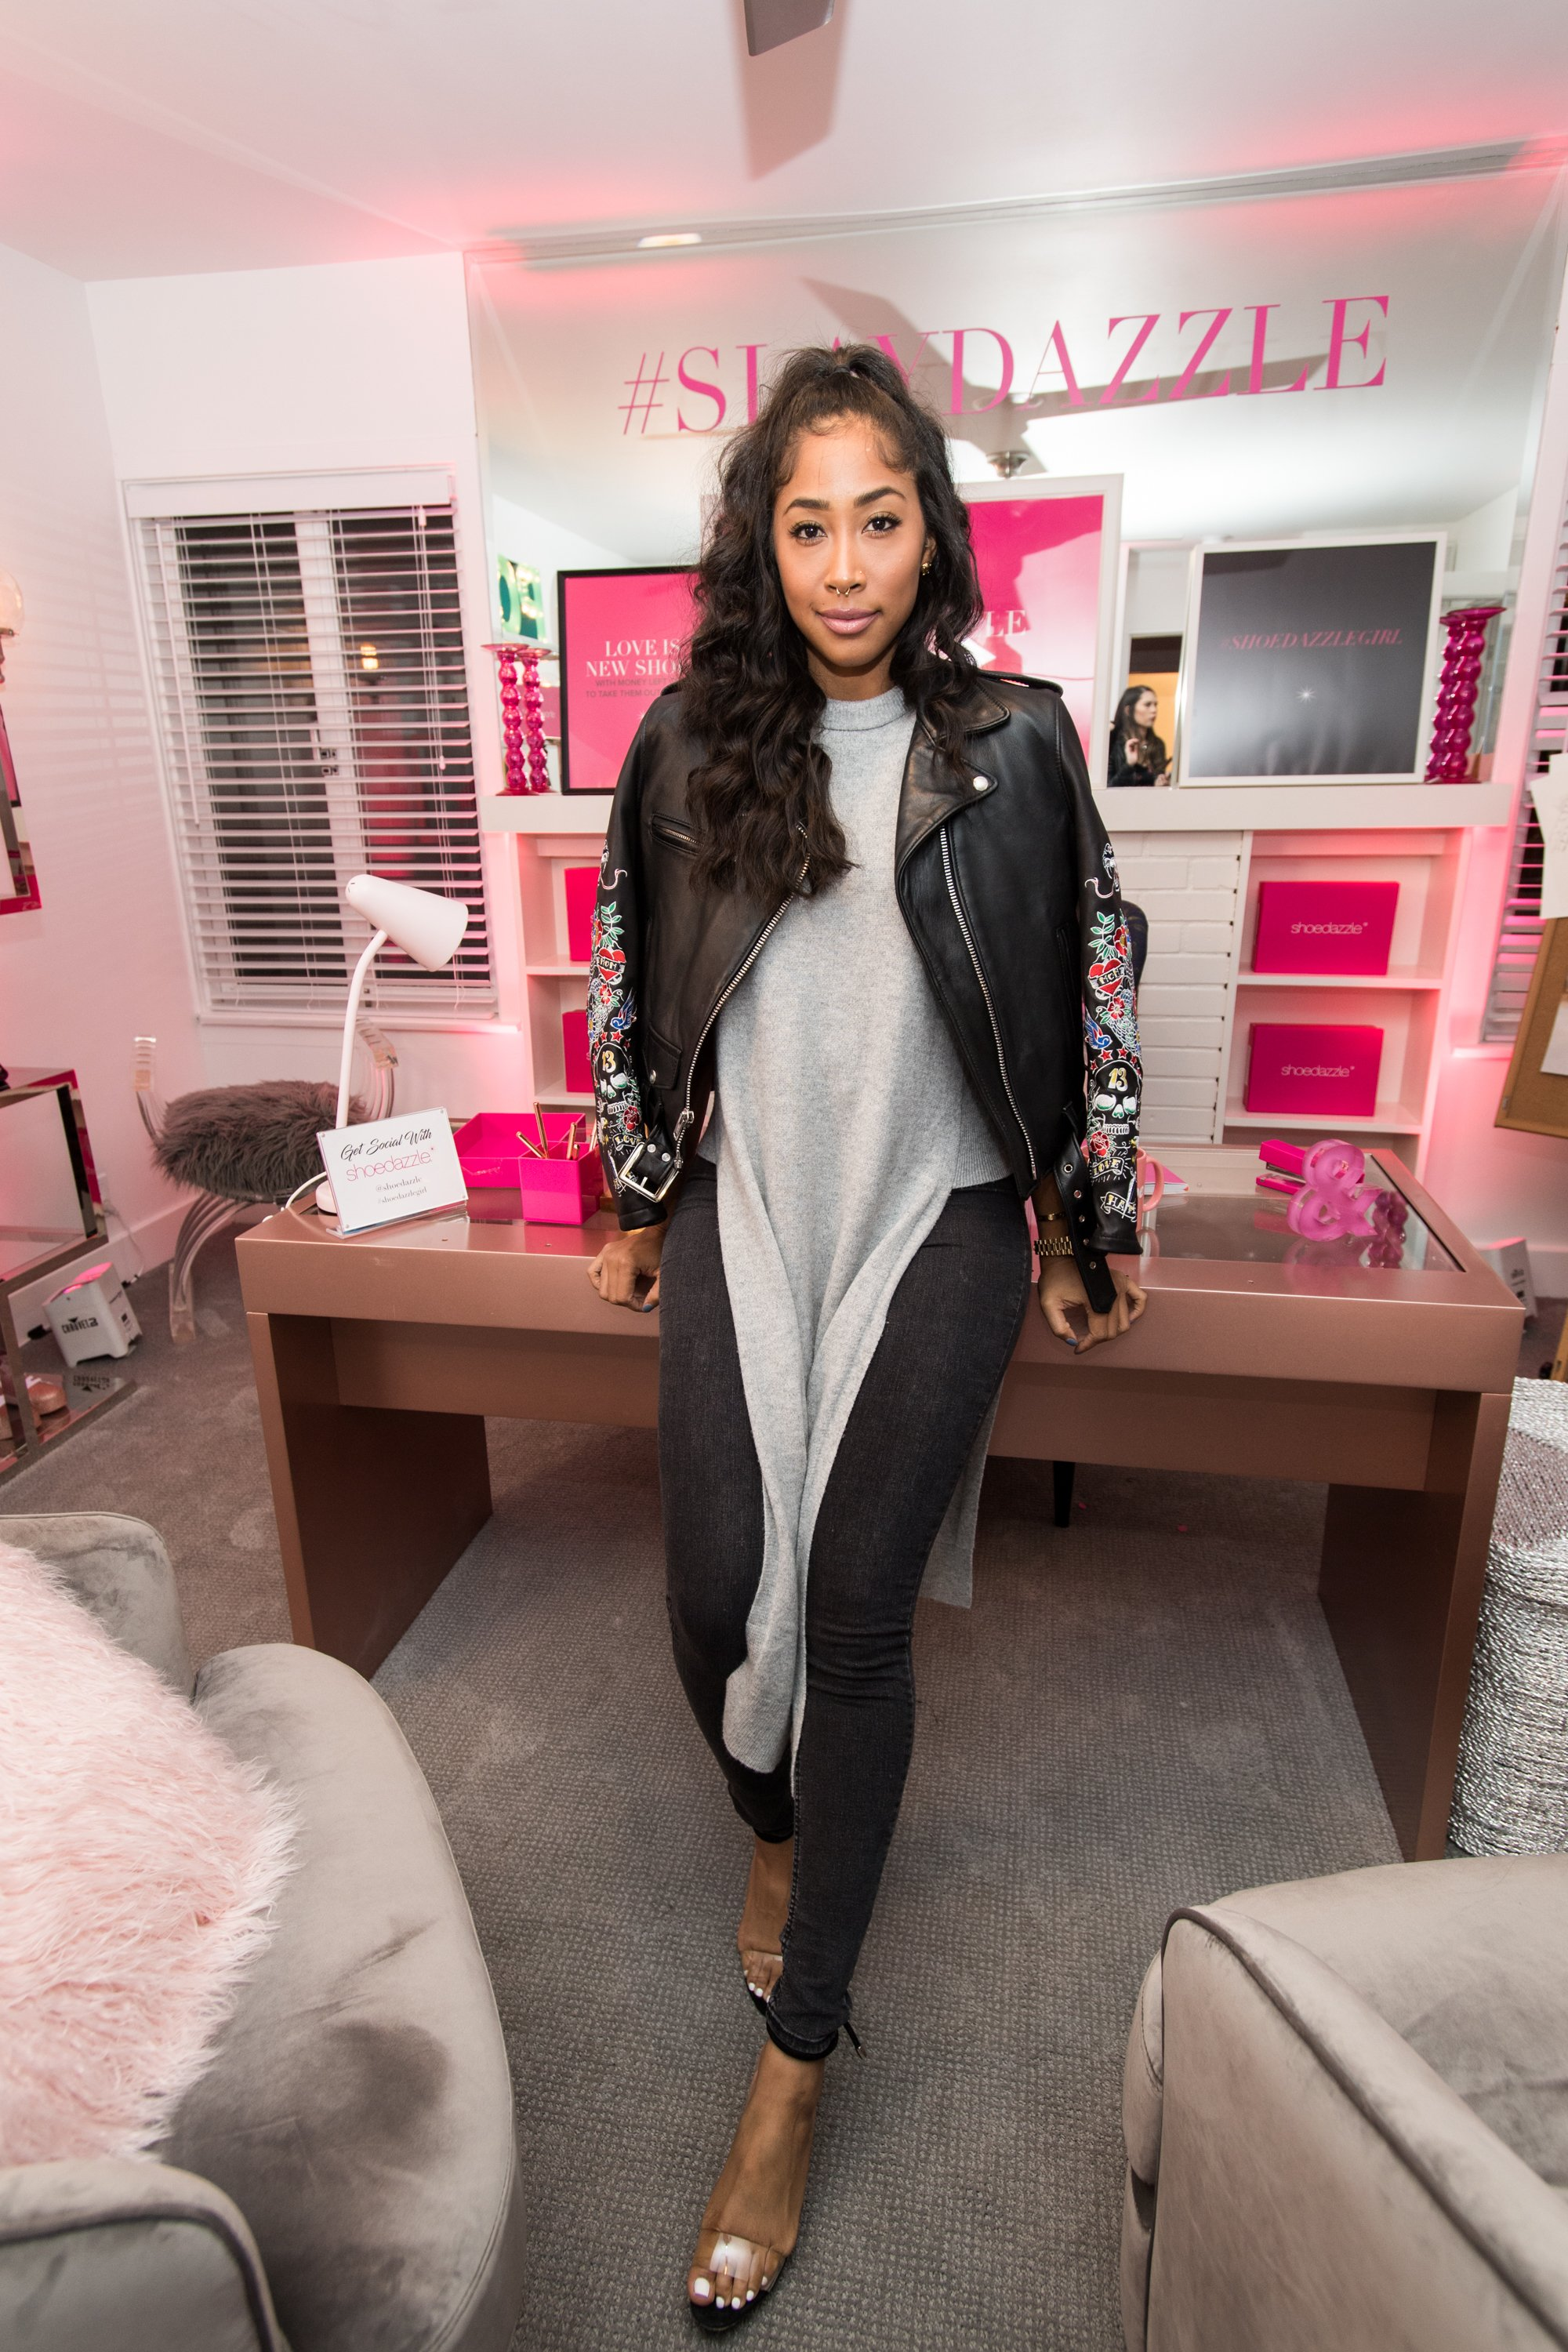 Apryl Jones at the 'ShoeDazzle X BarbieStyle party' on Jan. 31, 2018 in California | Photo: Getty Images